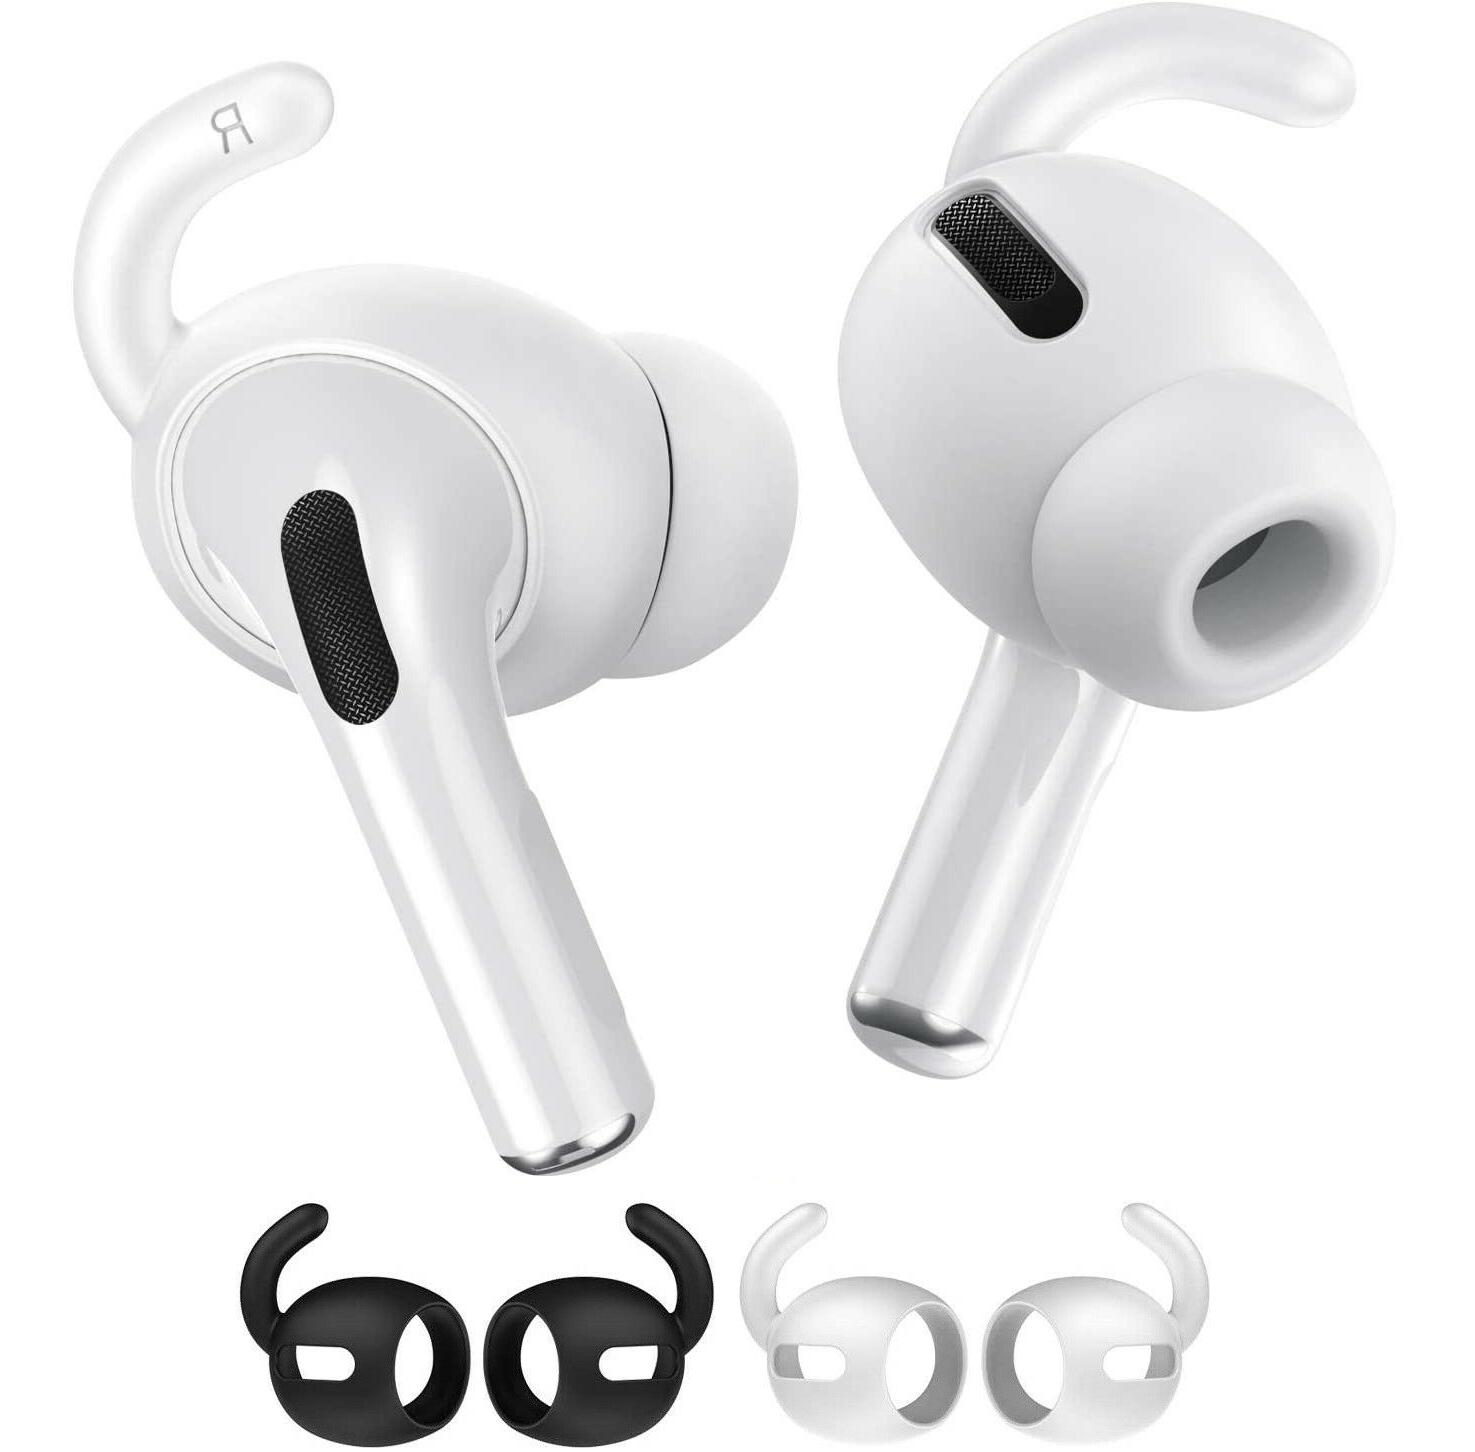 2 pairs airpods pro ear hook tips